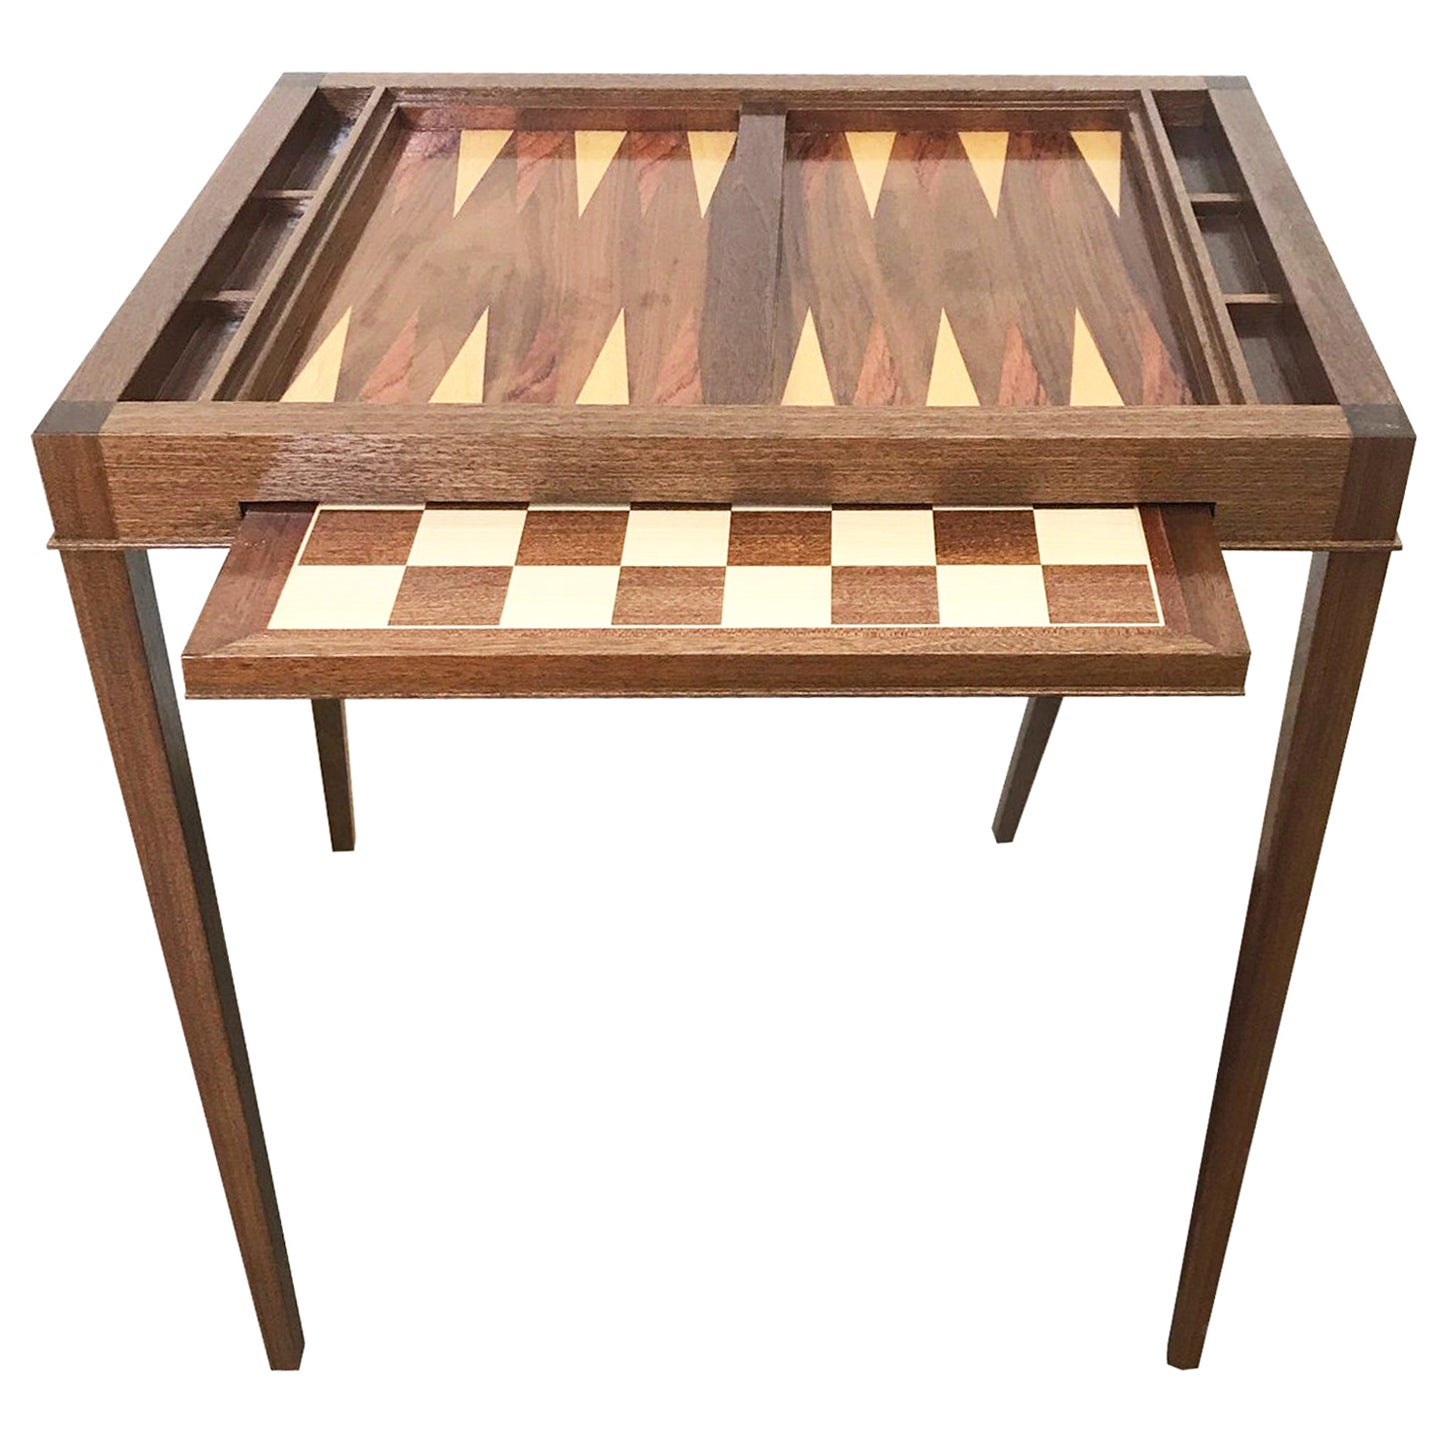 Custom Walnut Game Table with Backgammon and Chess